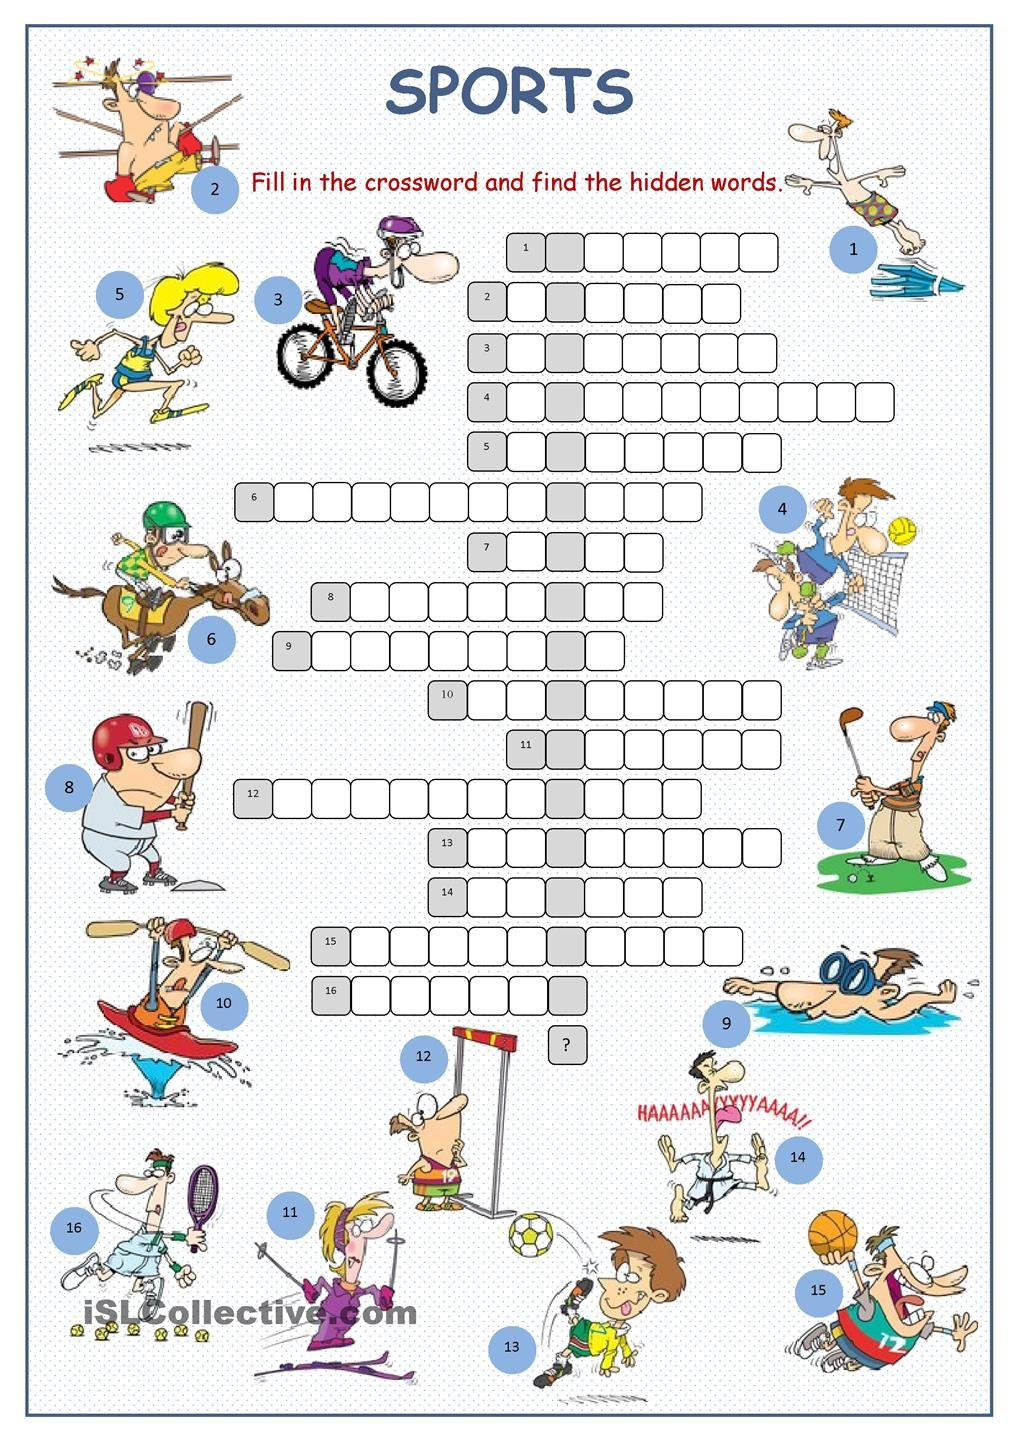 Sports Crossword Puzzle | English | Sports Crossword, Sport English - Printable Crossword Puzzles Sports